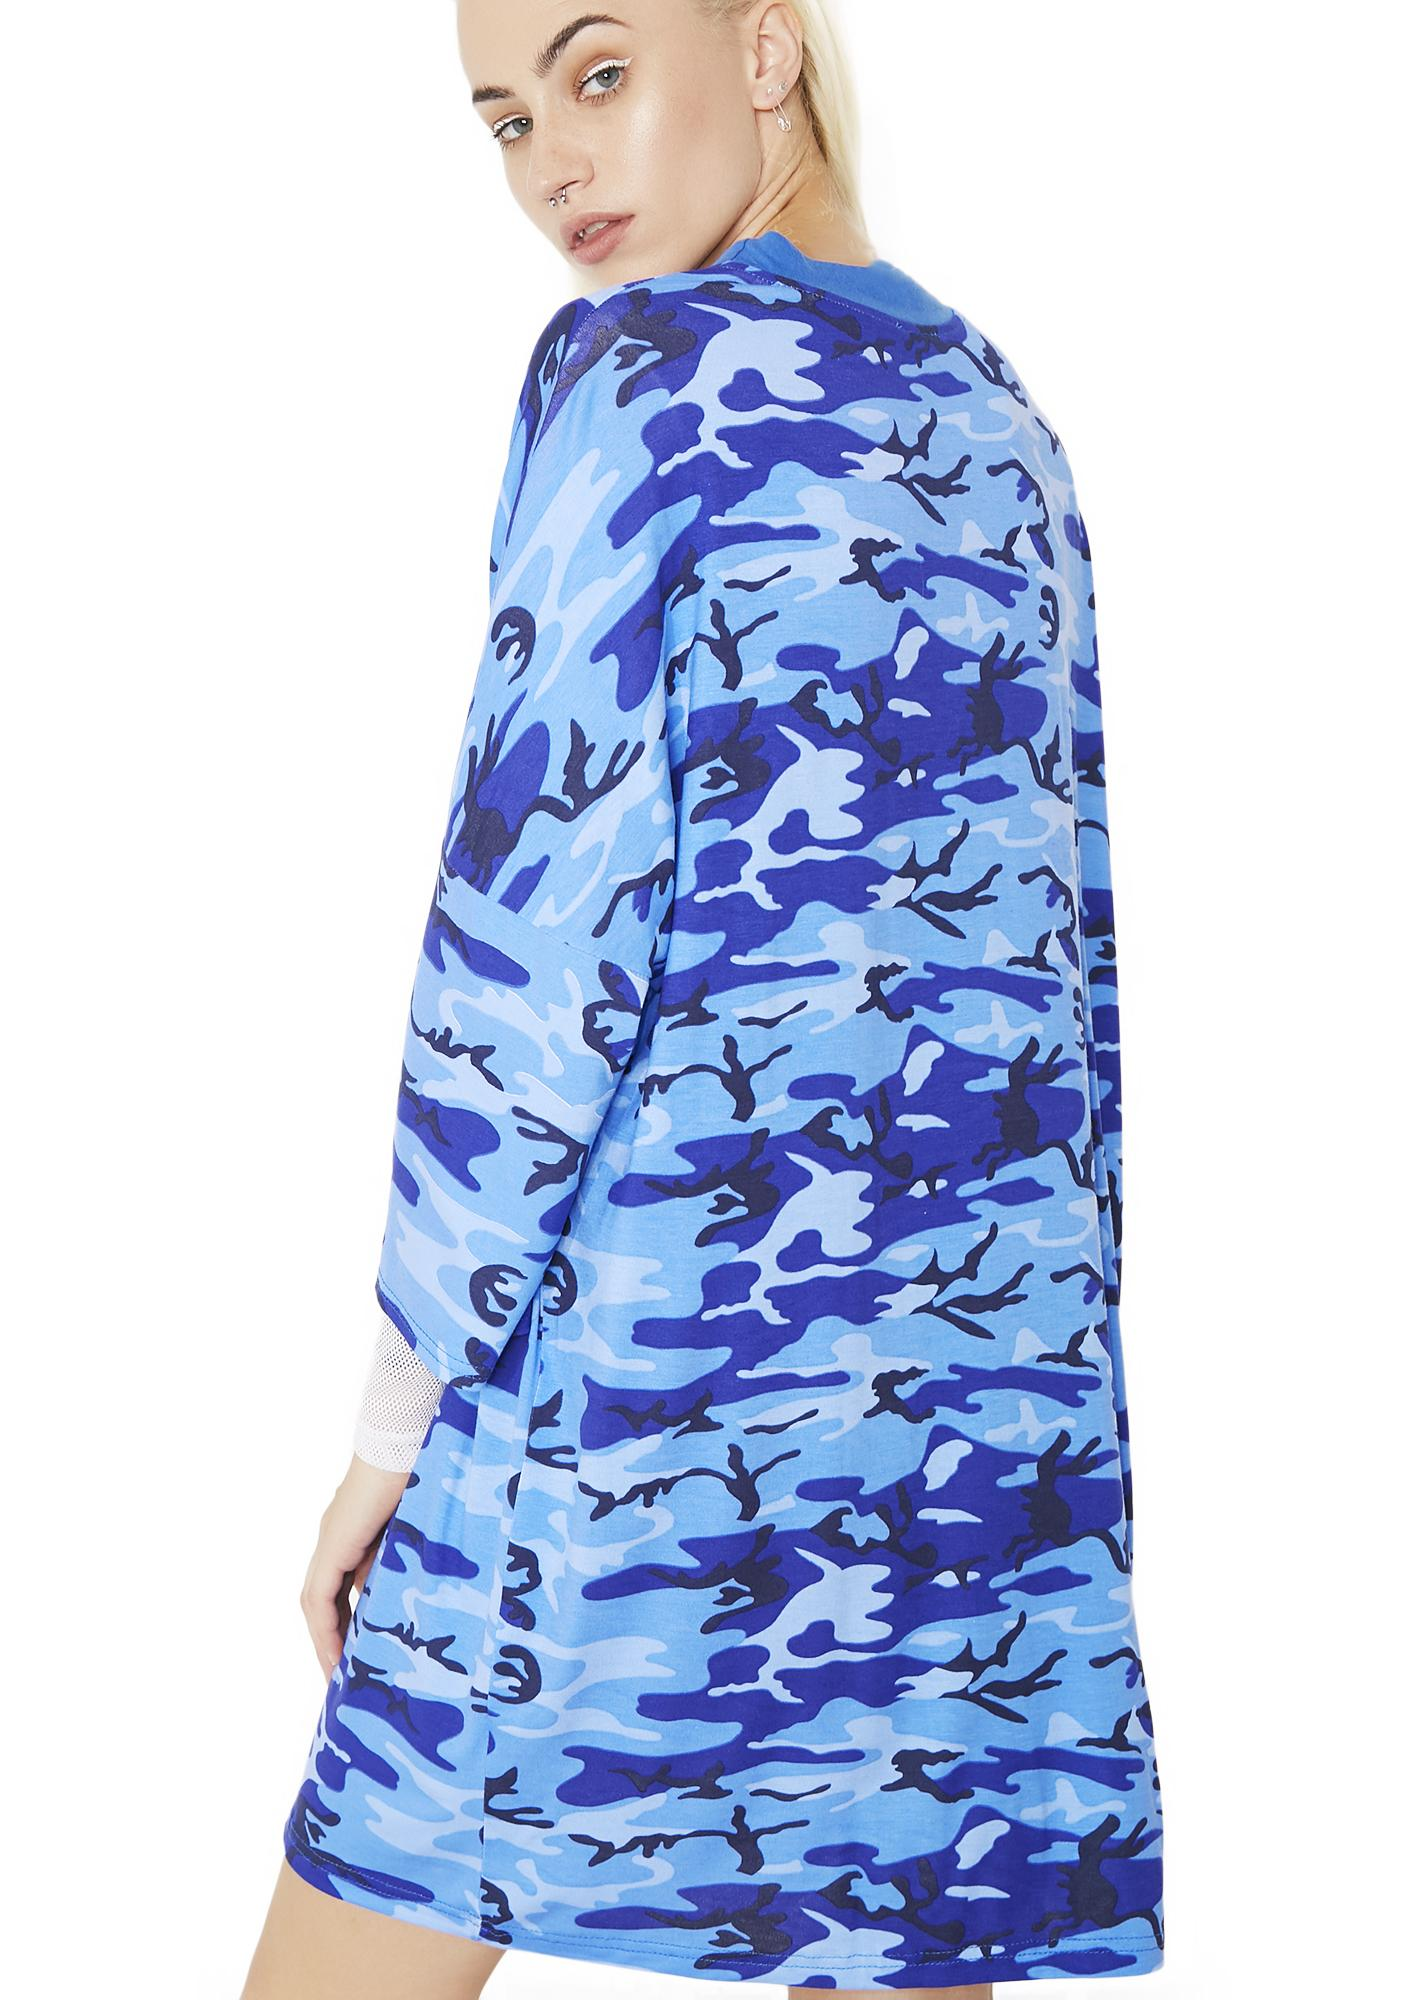 The Ragged Priest Blue Camo Dress